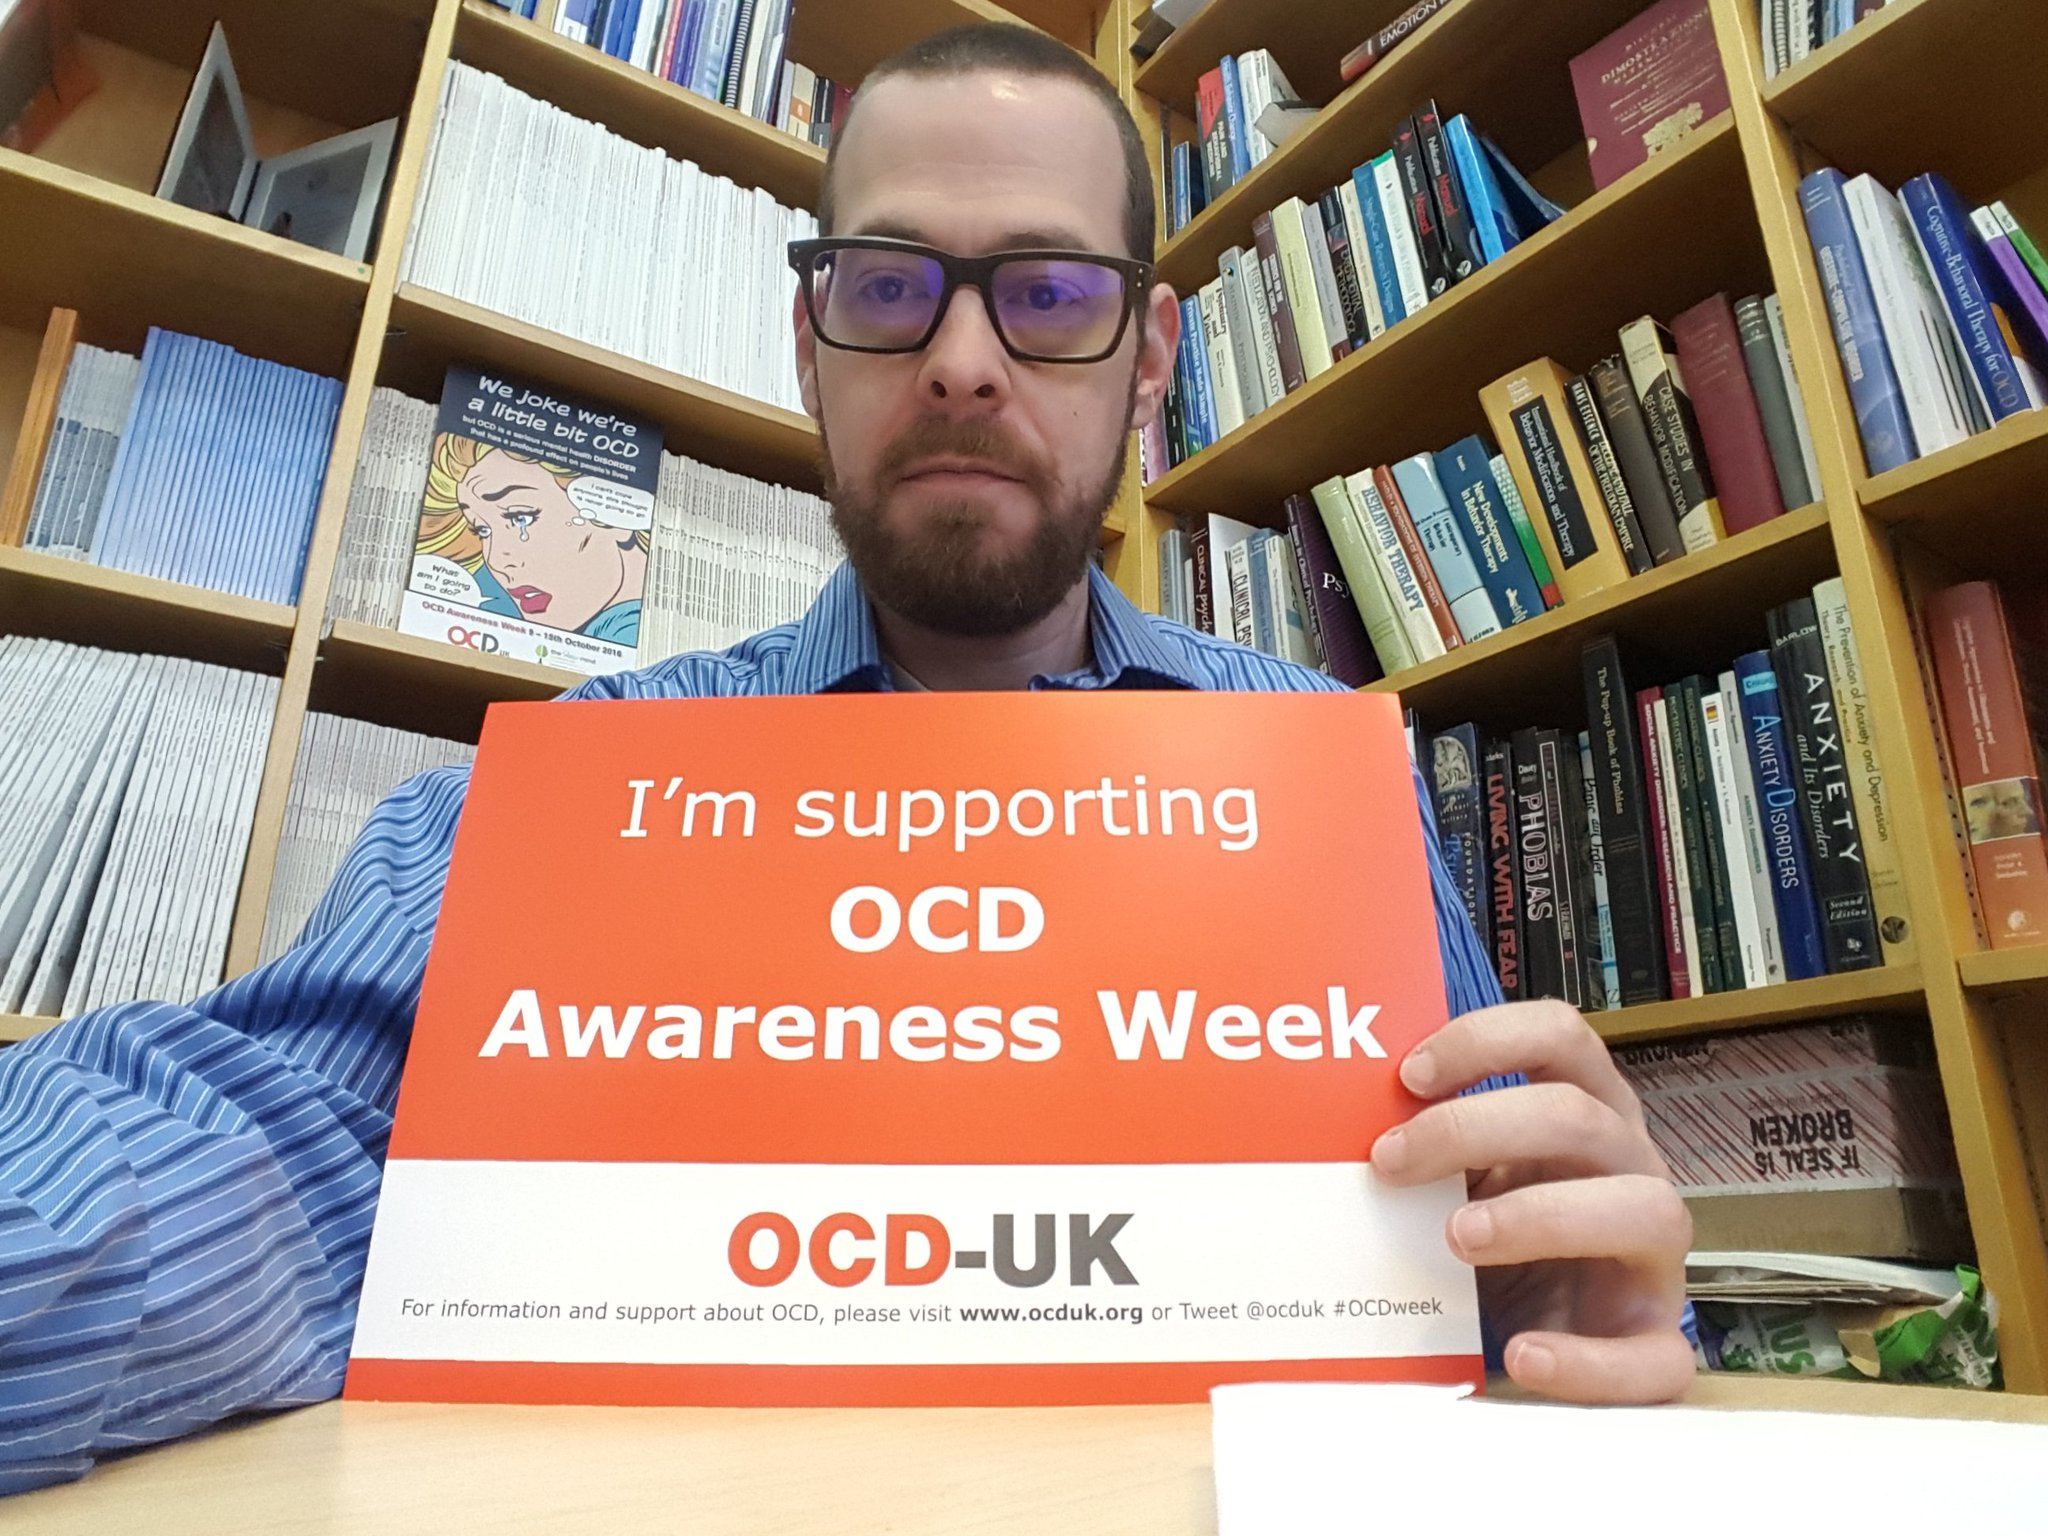 OCD Awareness Week